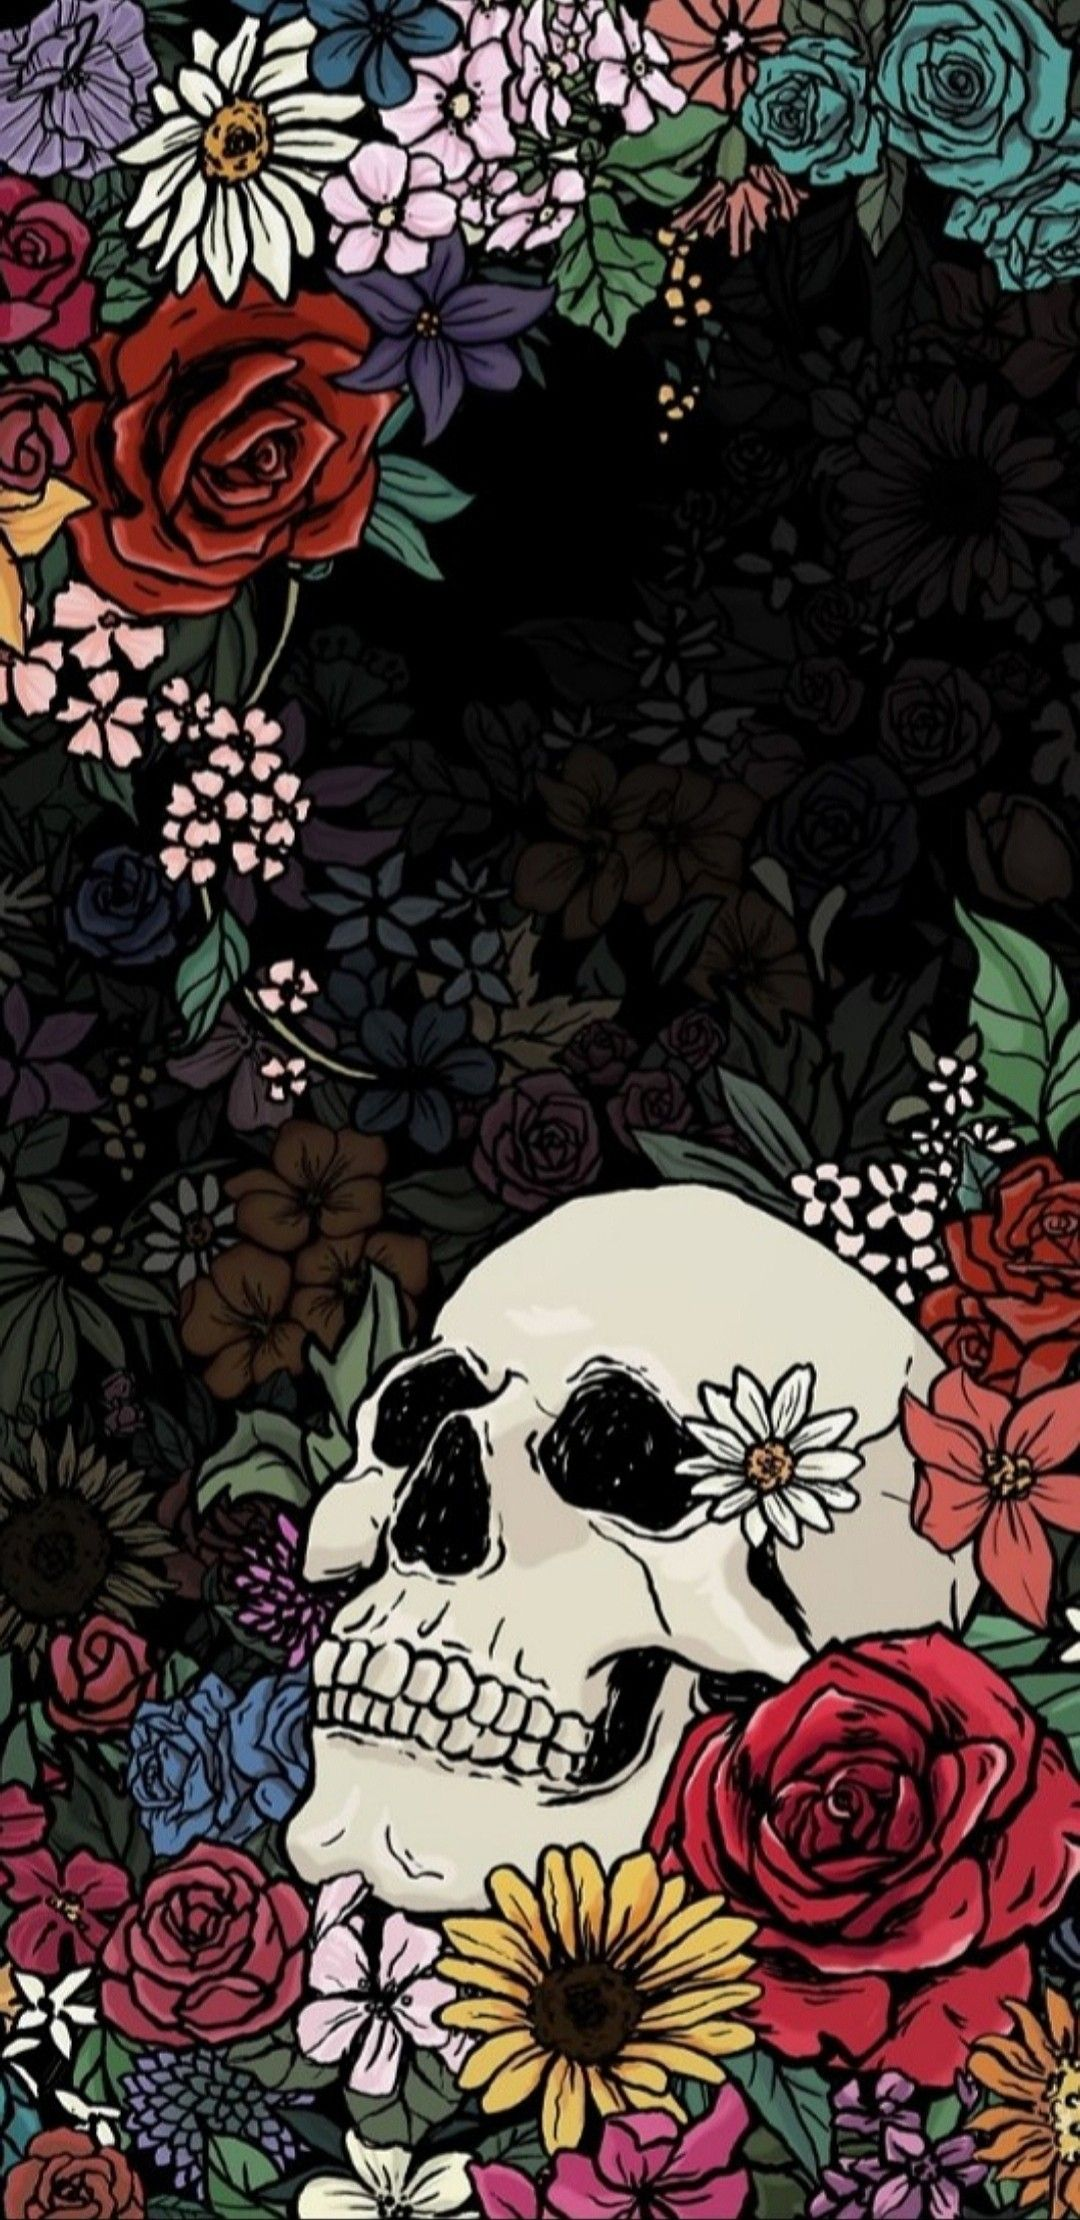 Wallpaper Skull Wallpaper Art Wallpaper Skull Art